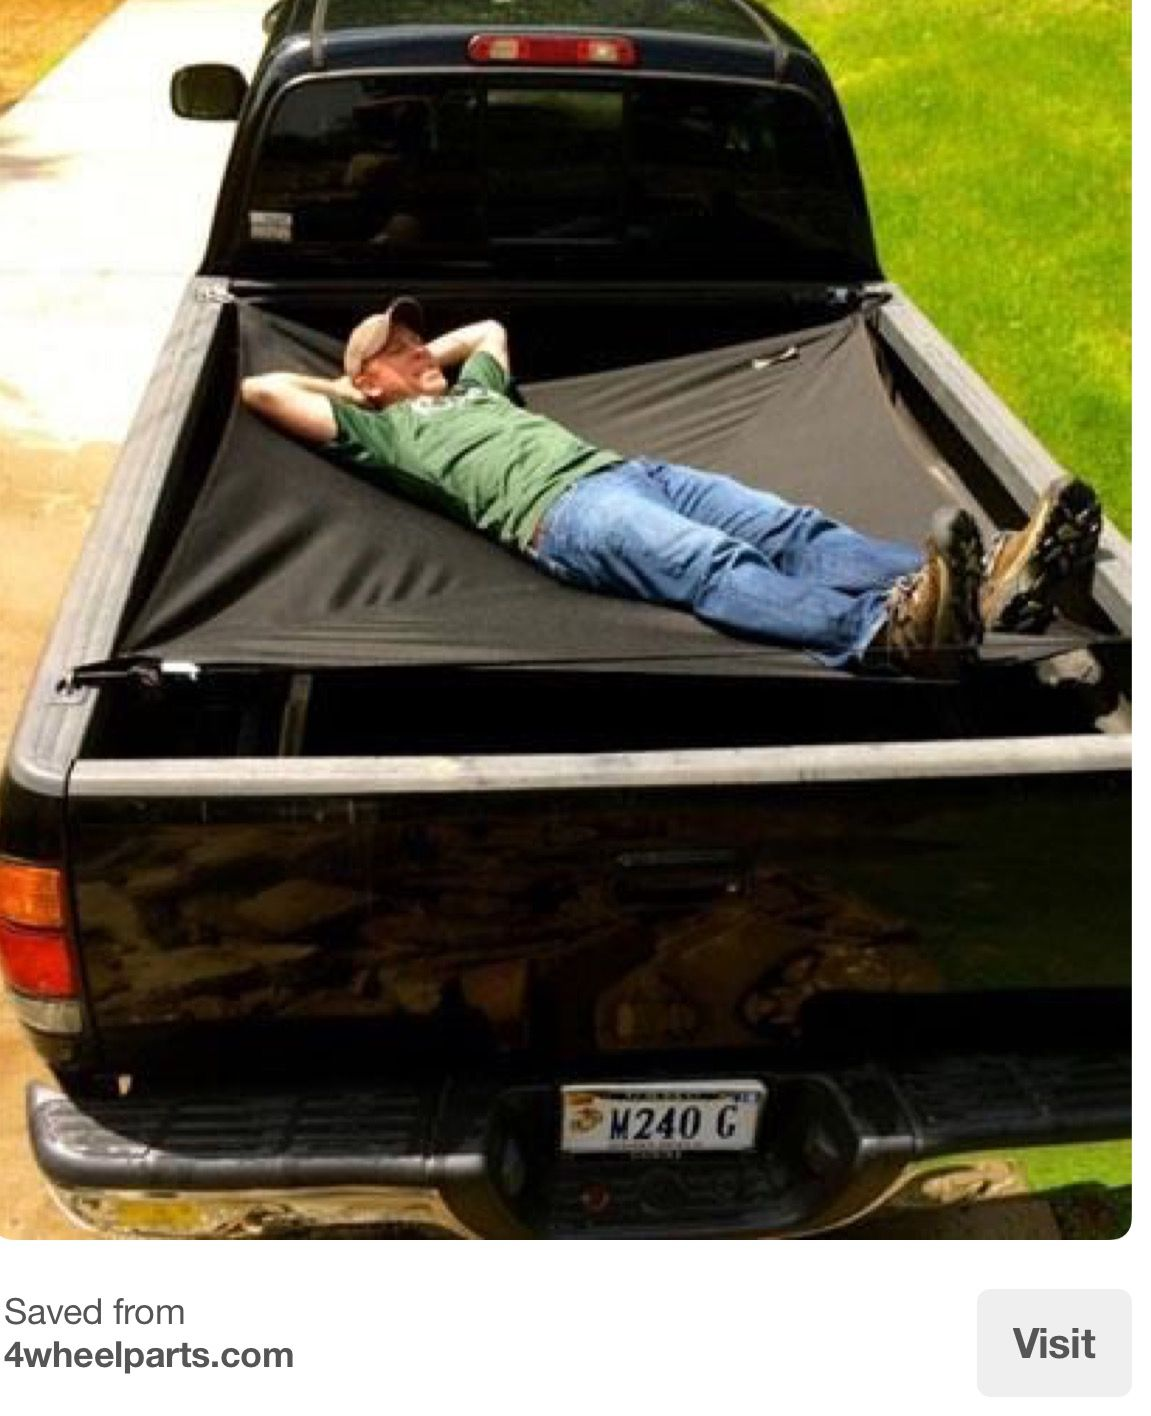 The Truck Bed Lounger